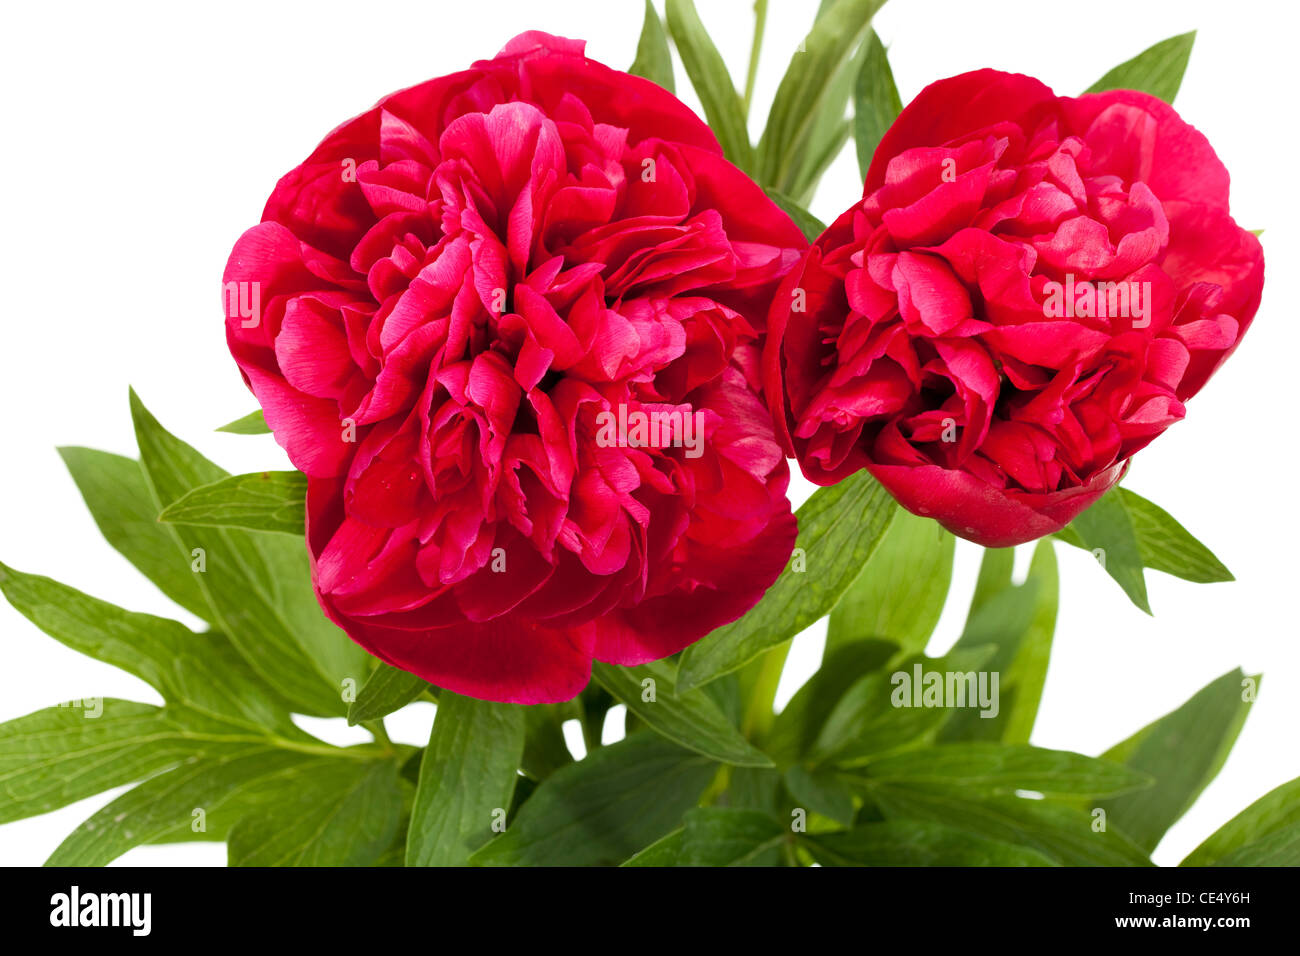 two red peony with leaf on white background - Stock Image